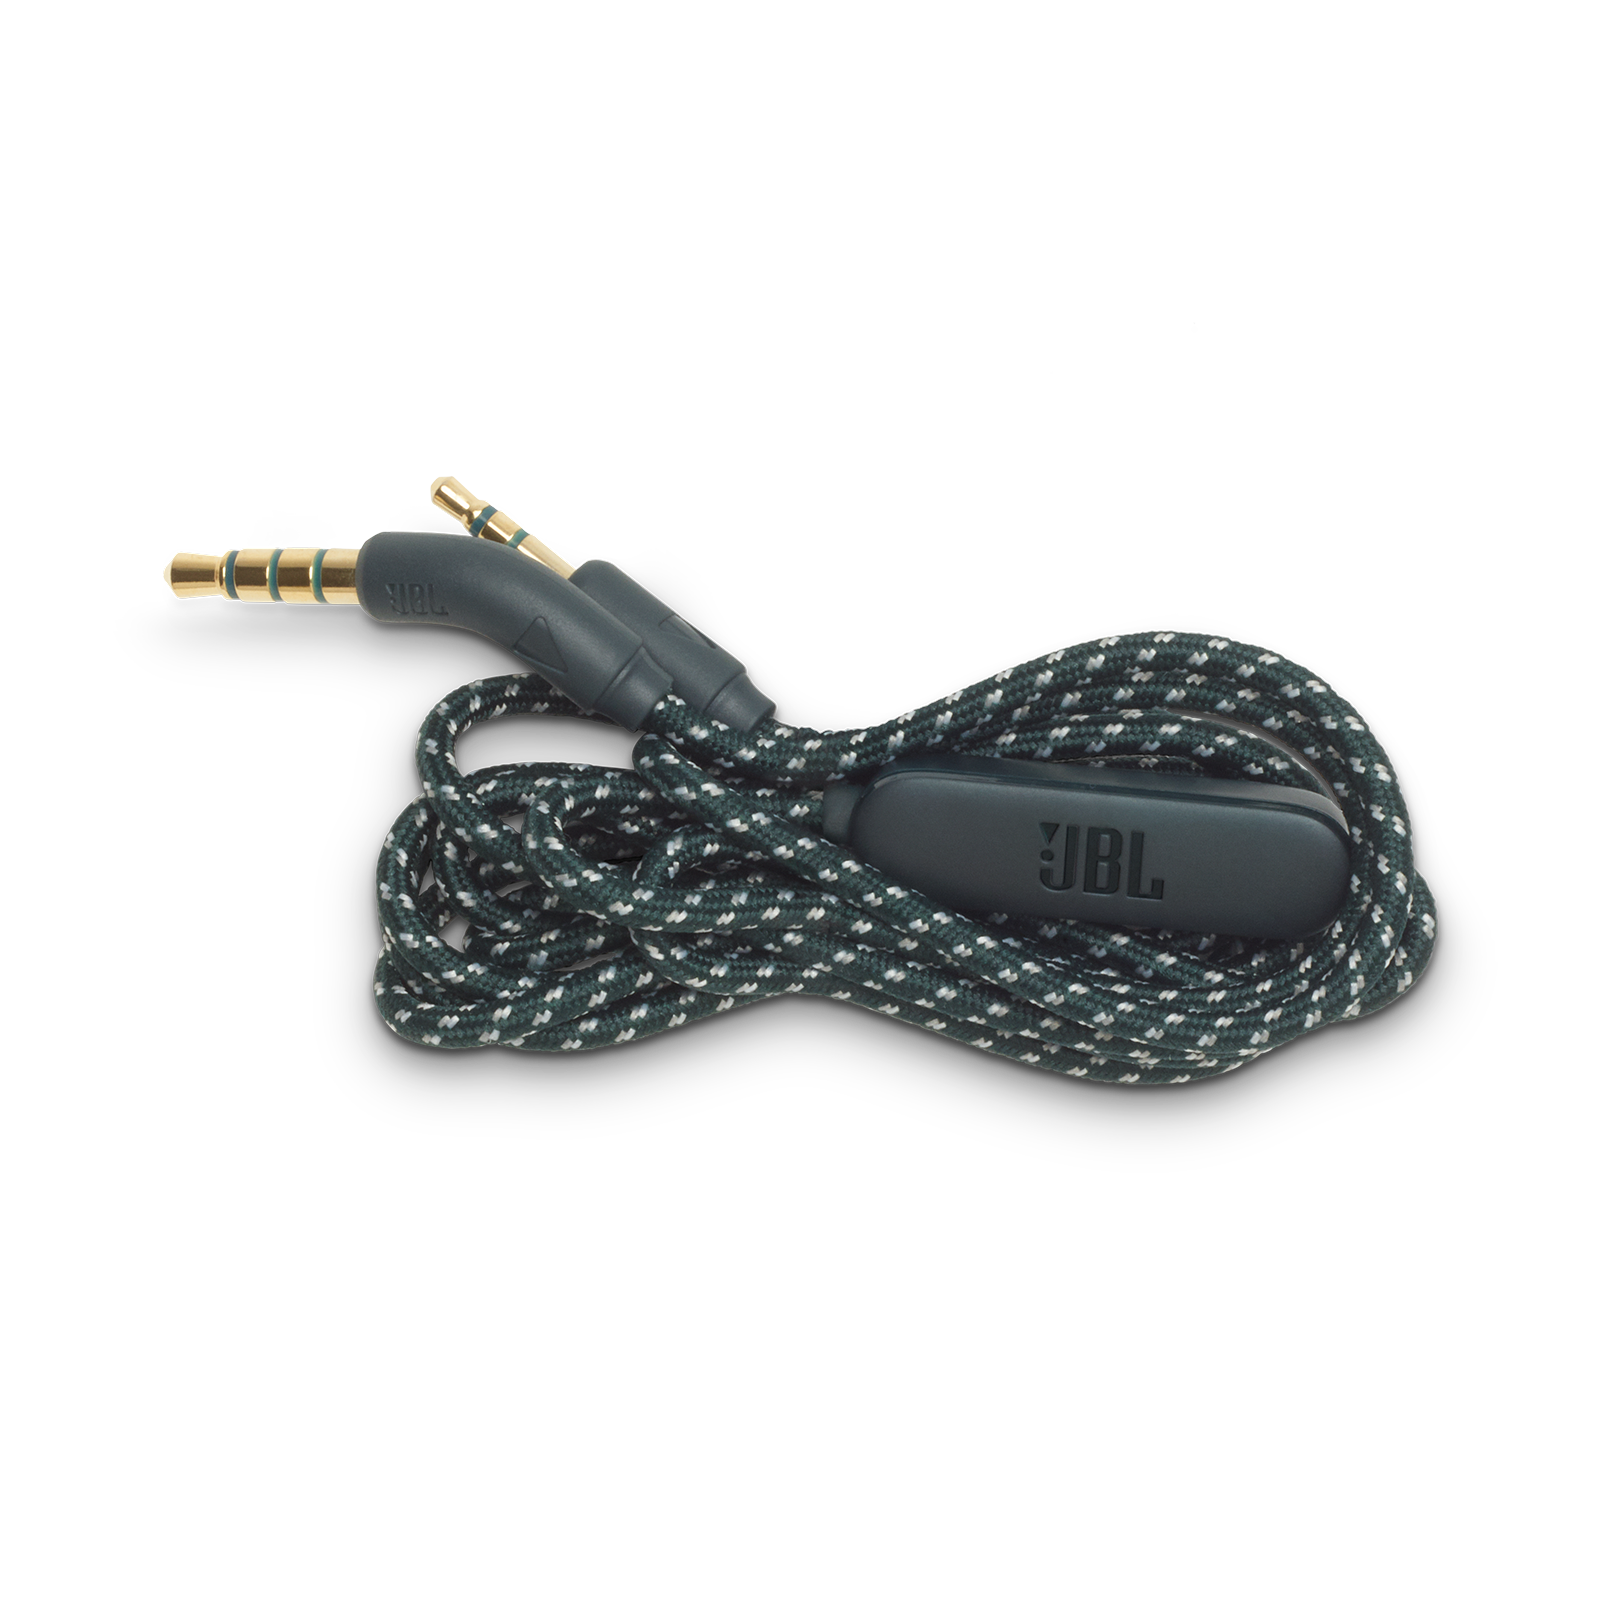 JBL Audio cable for Live 400/500BT